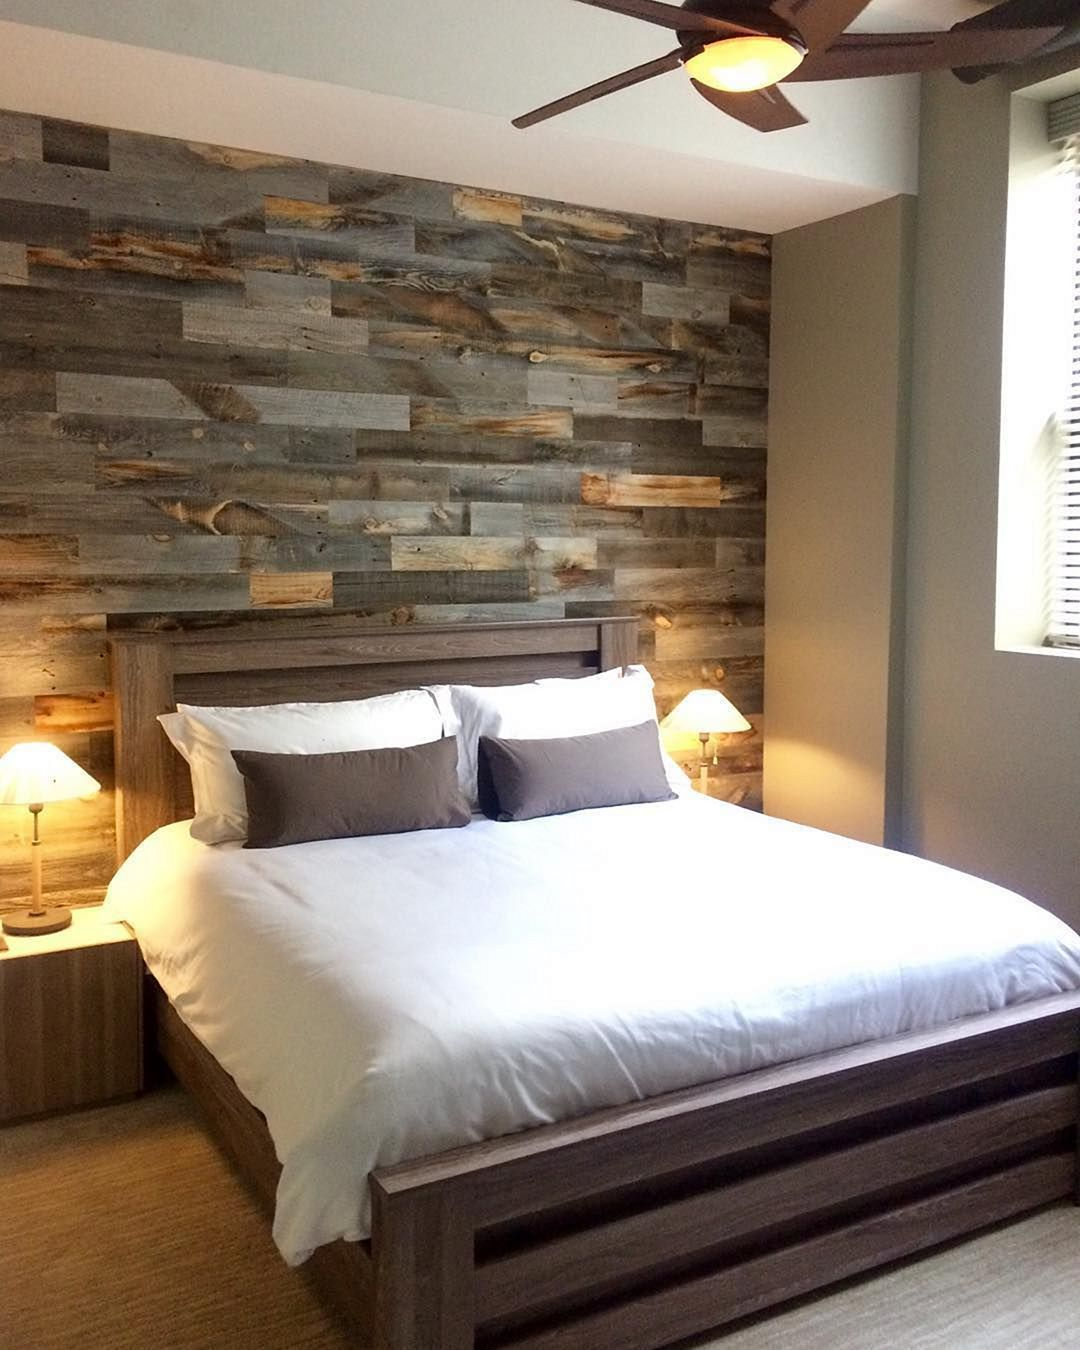 14 Astonishing Wood Pallet Accent Wall Ideas For Your Home Remodel Bedroom Bedroom Design Home